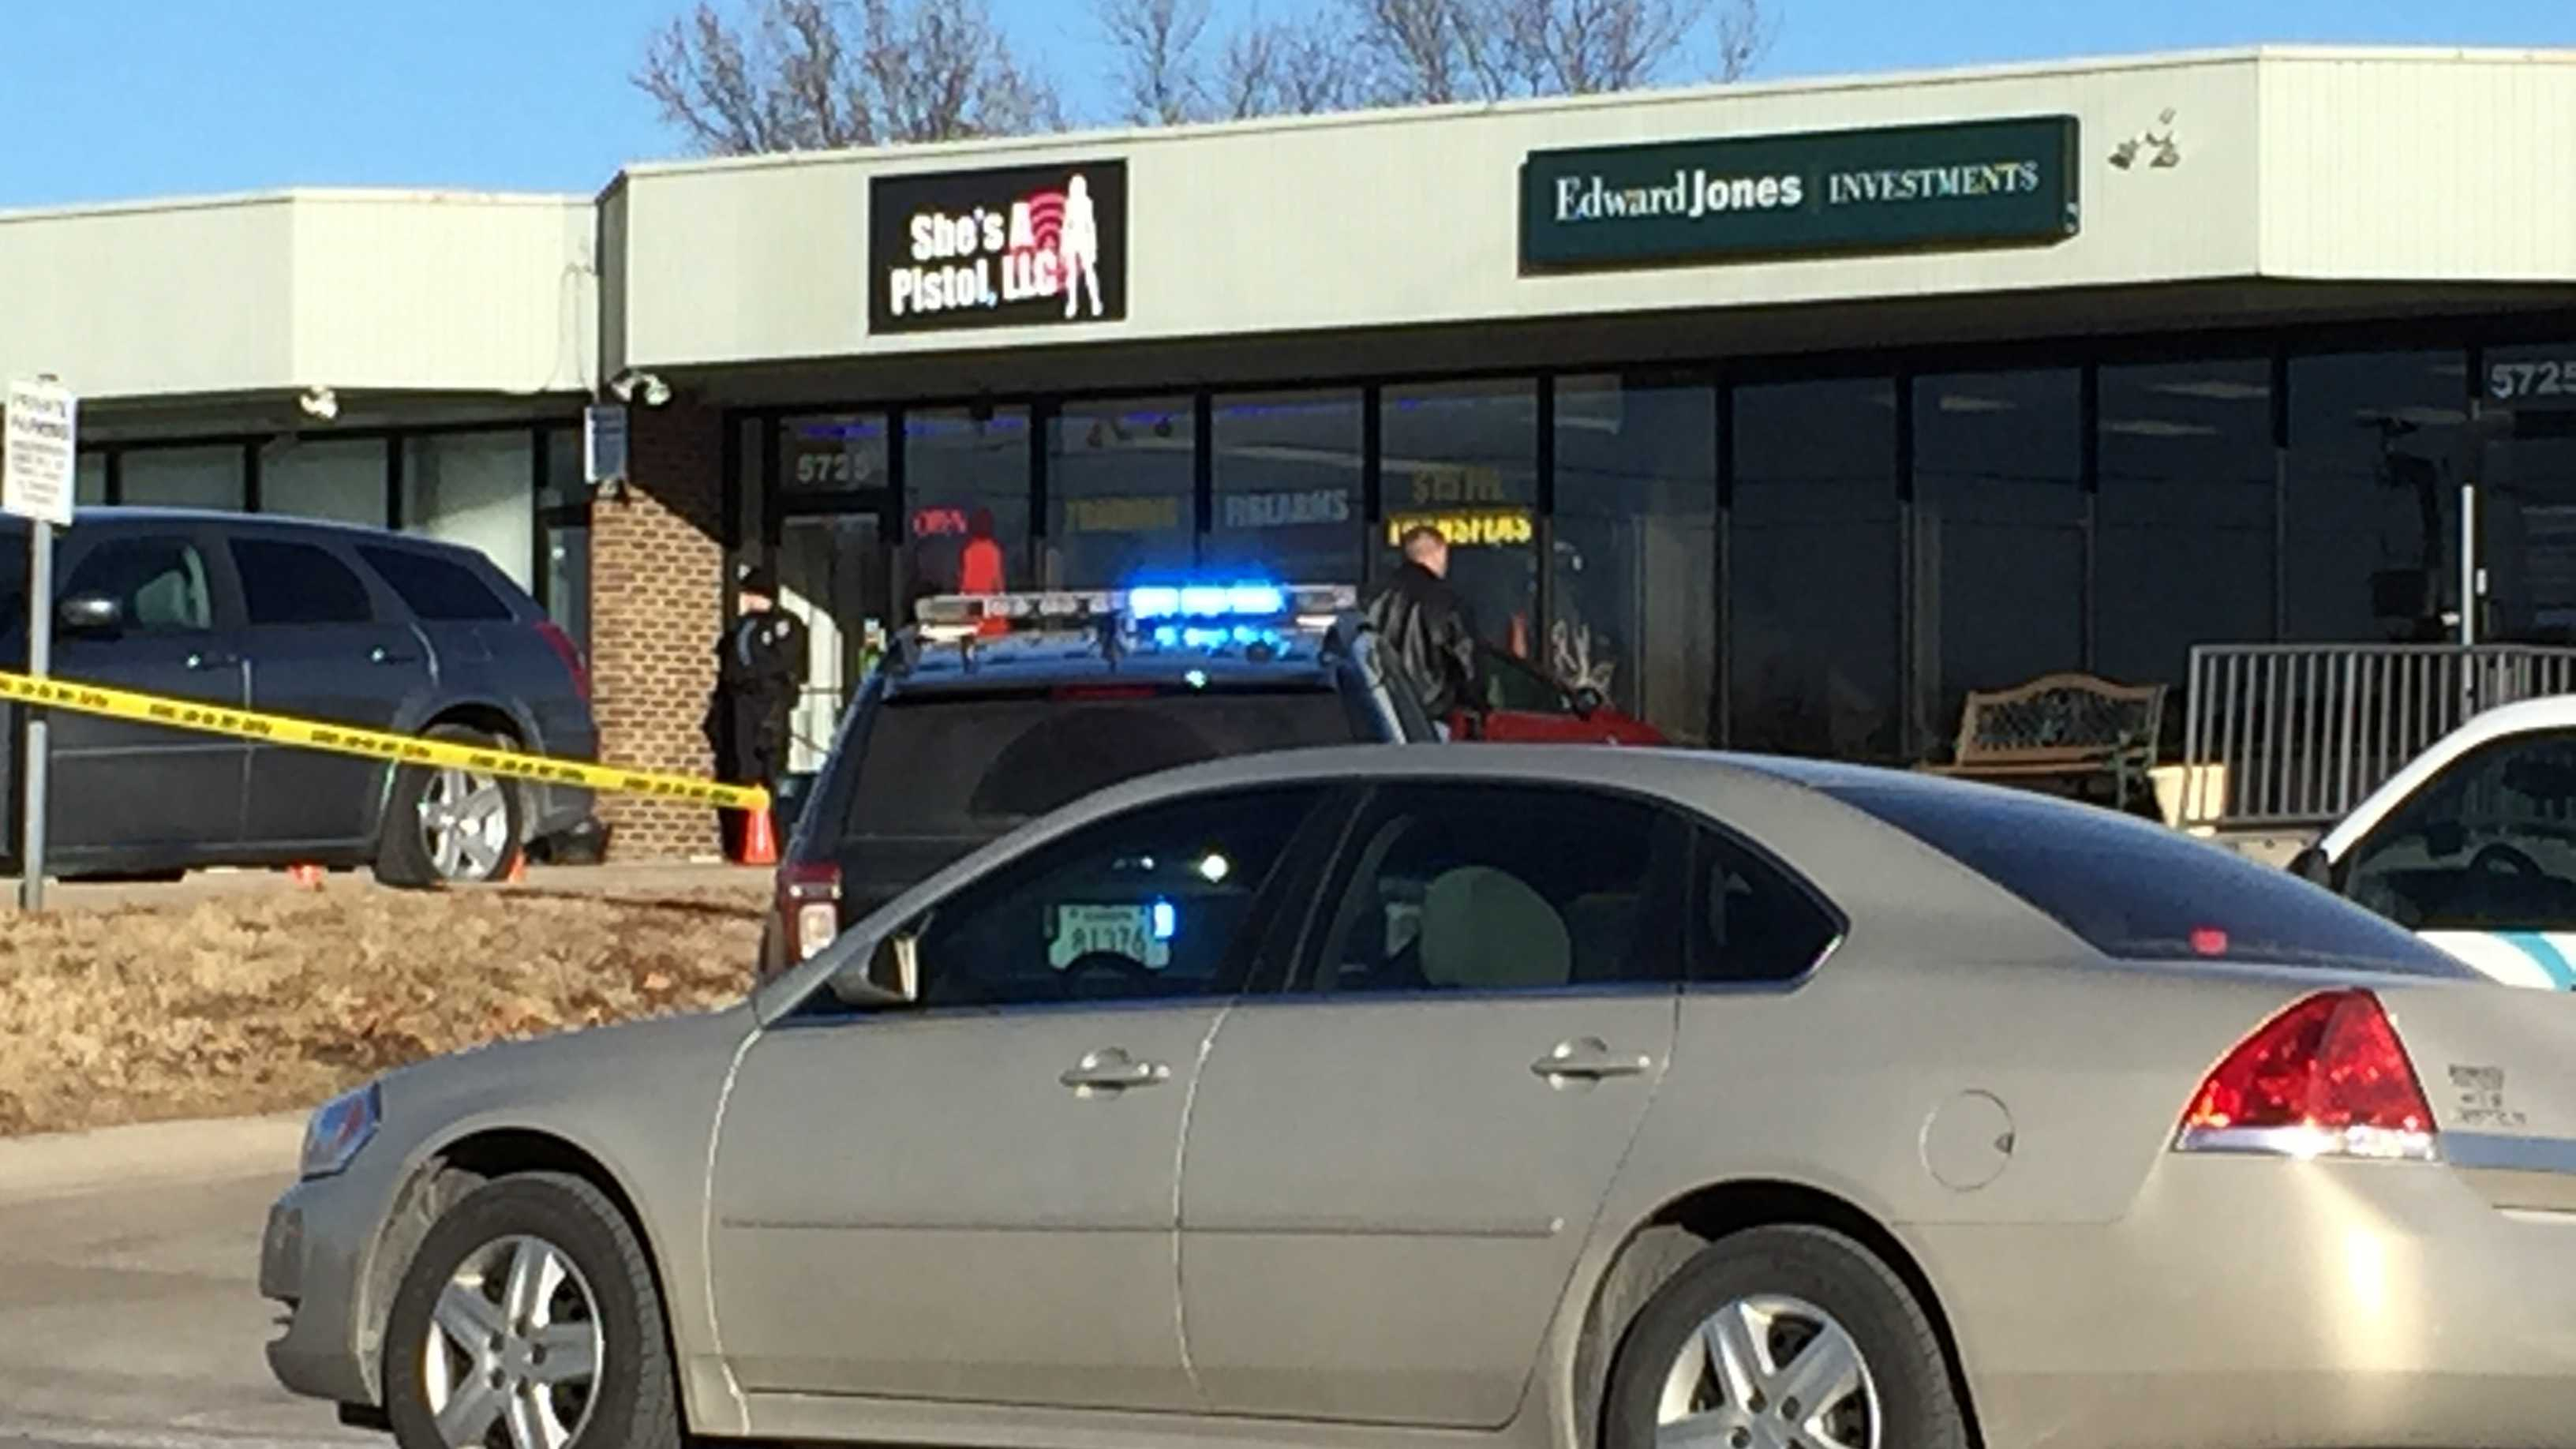 A Shawnee gun shop, where a co-owner died in what police call a botched robbery, will re-open.